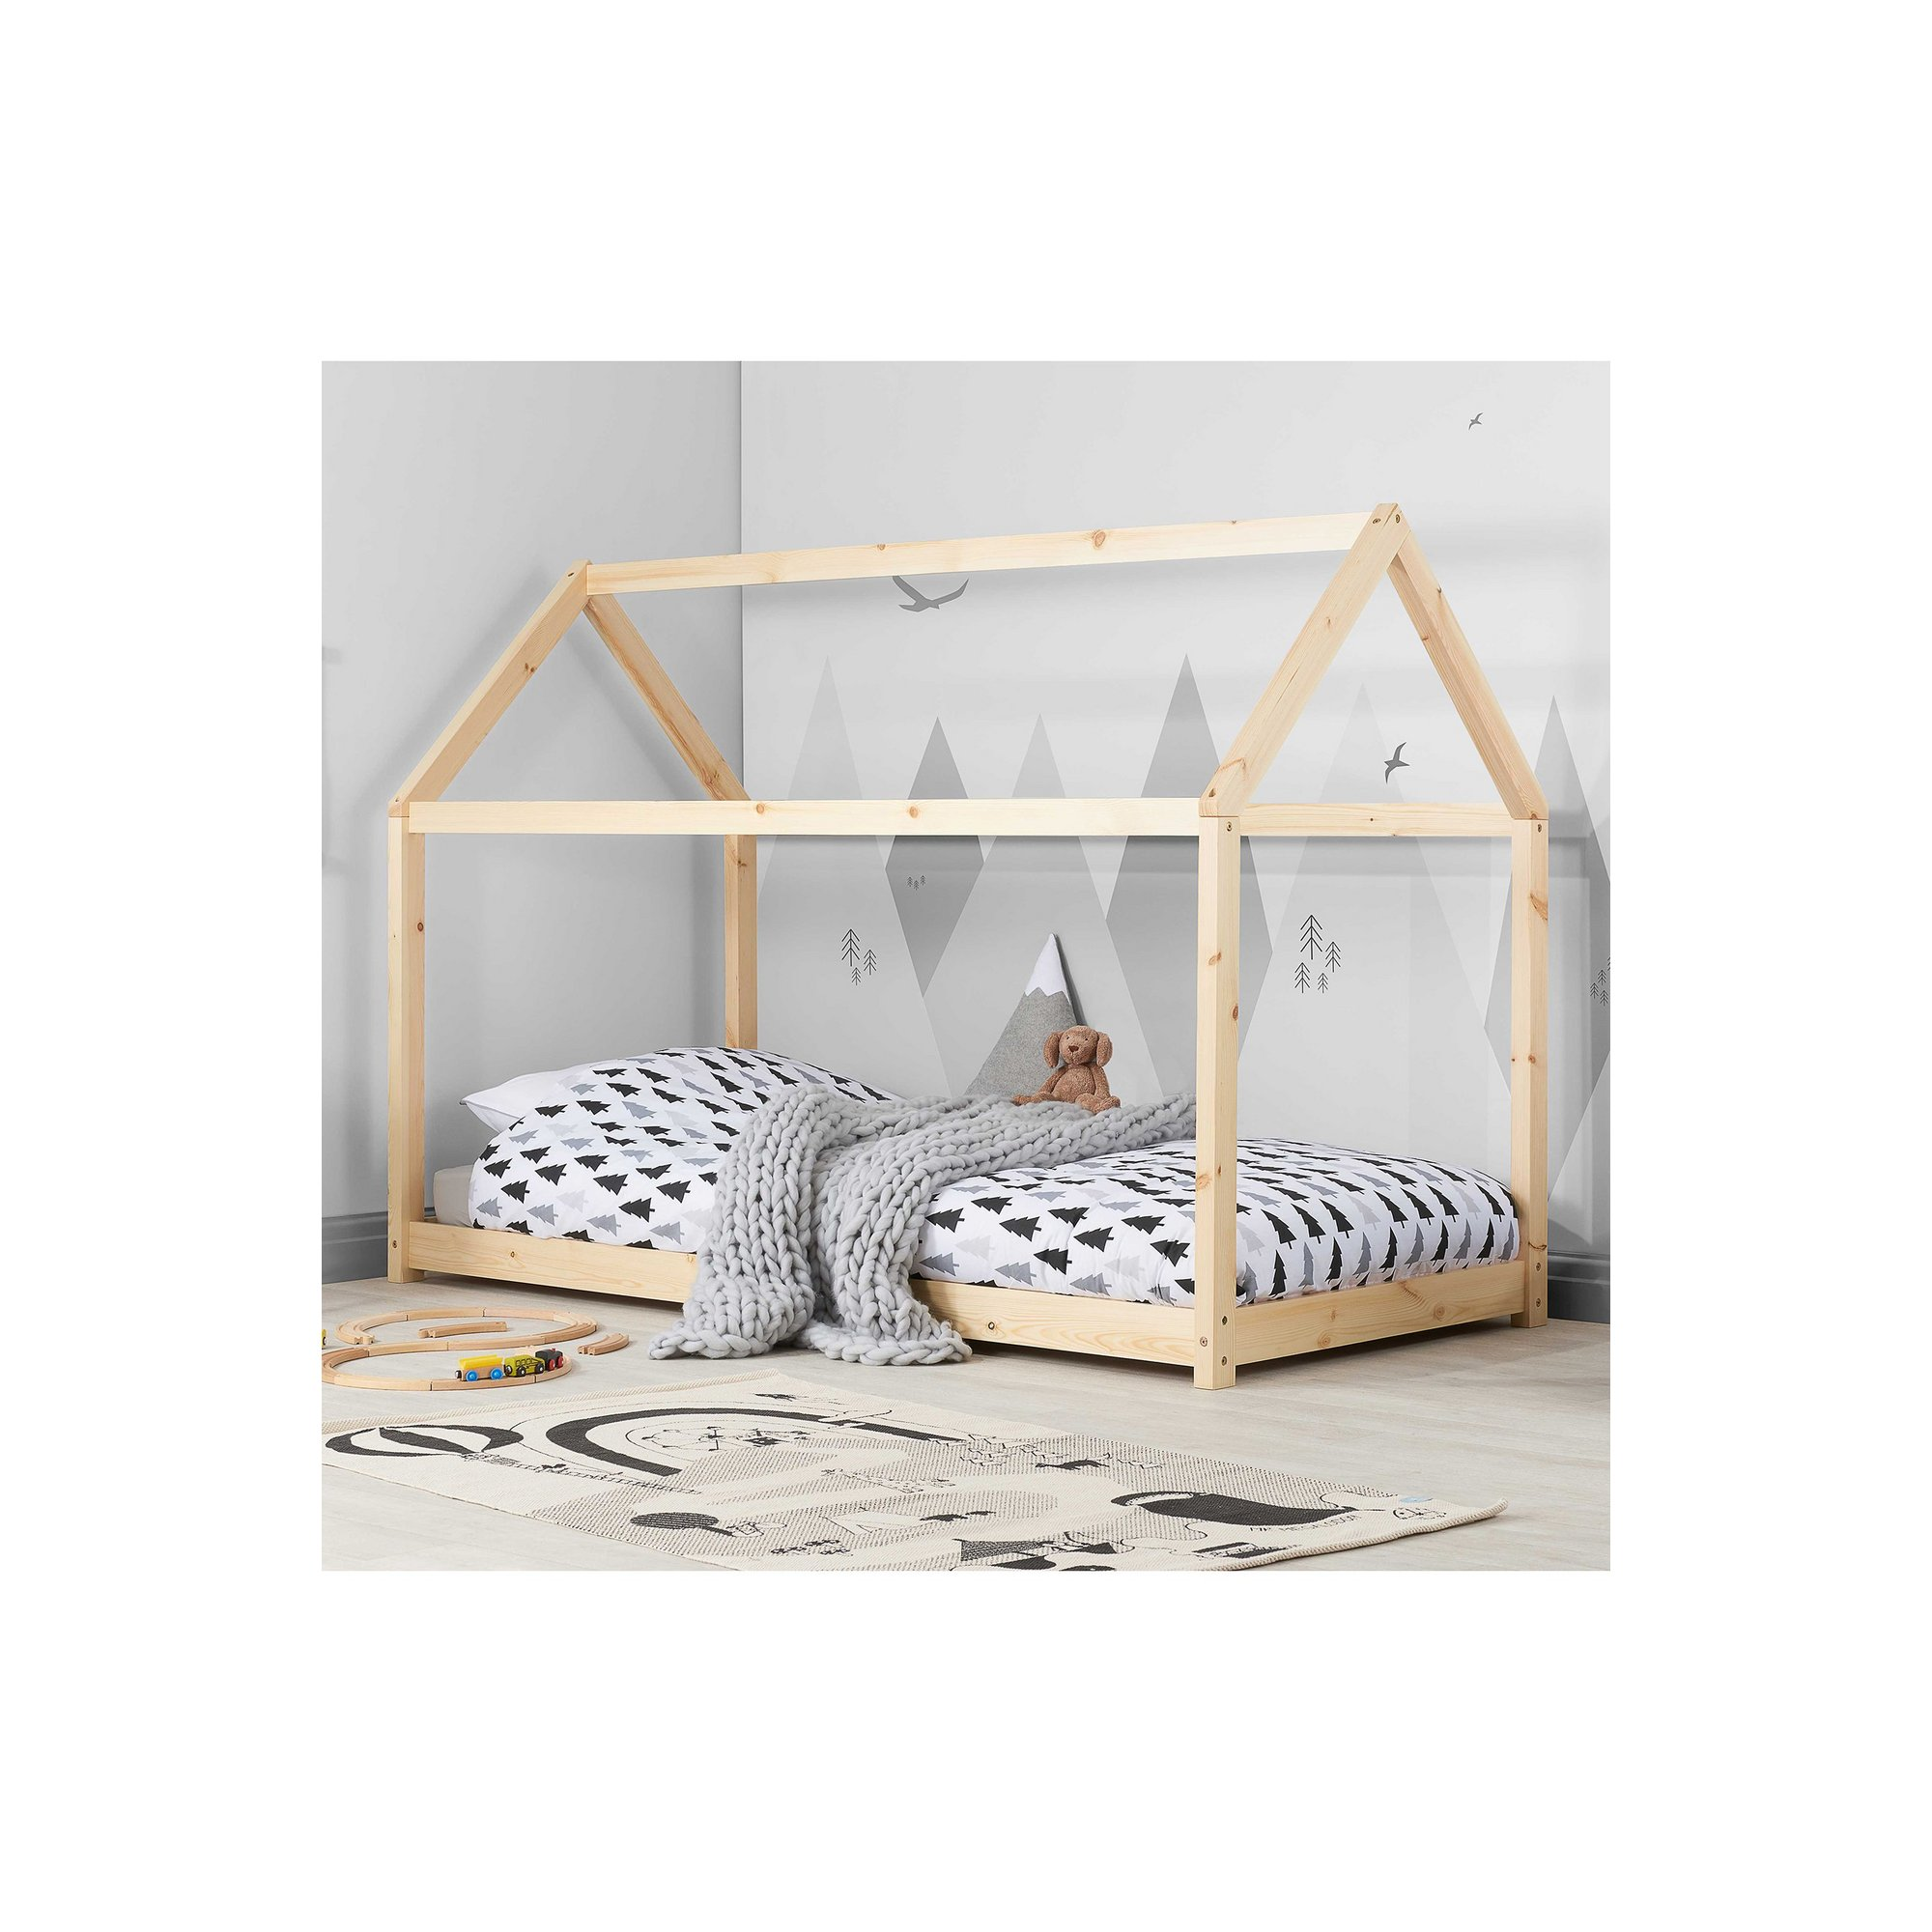 Image of Childrens House Bed